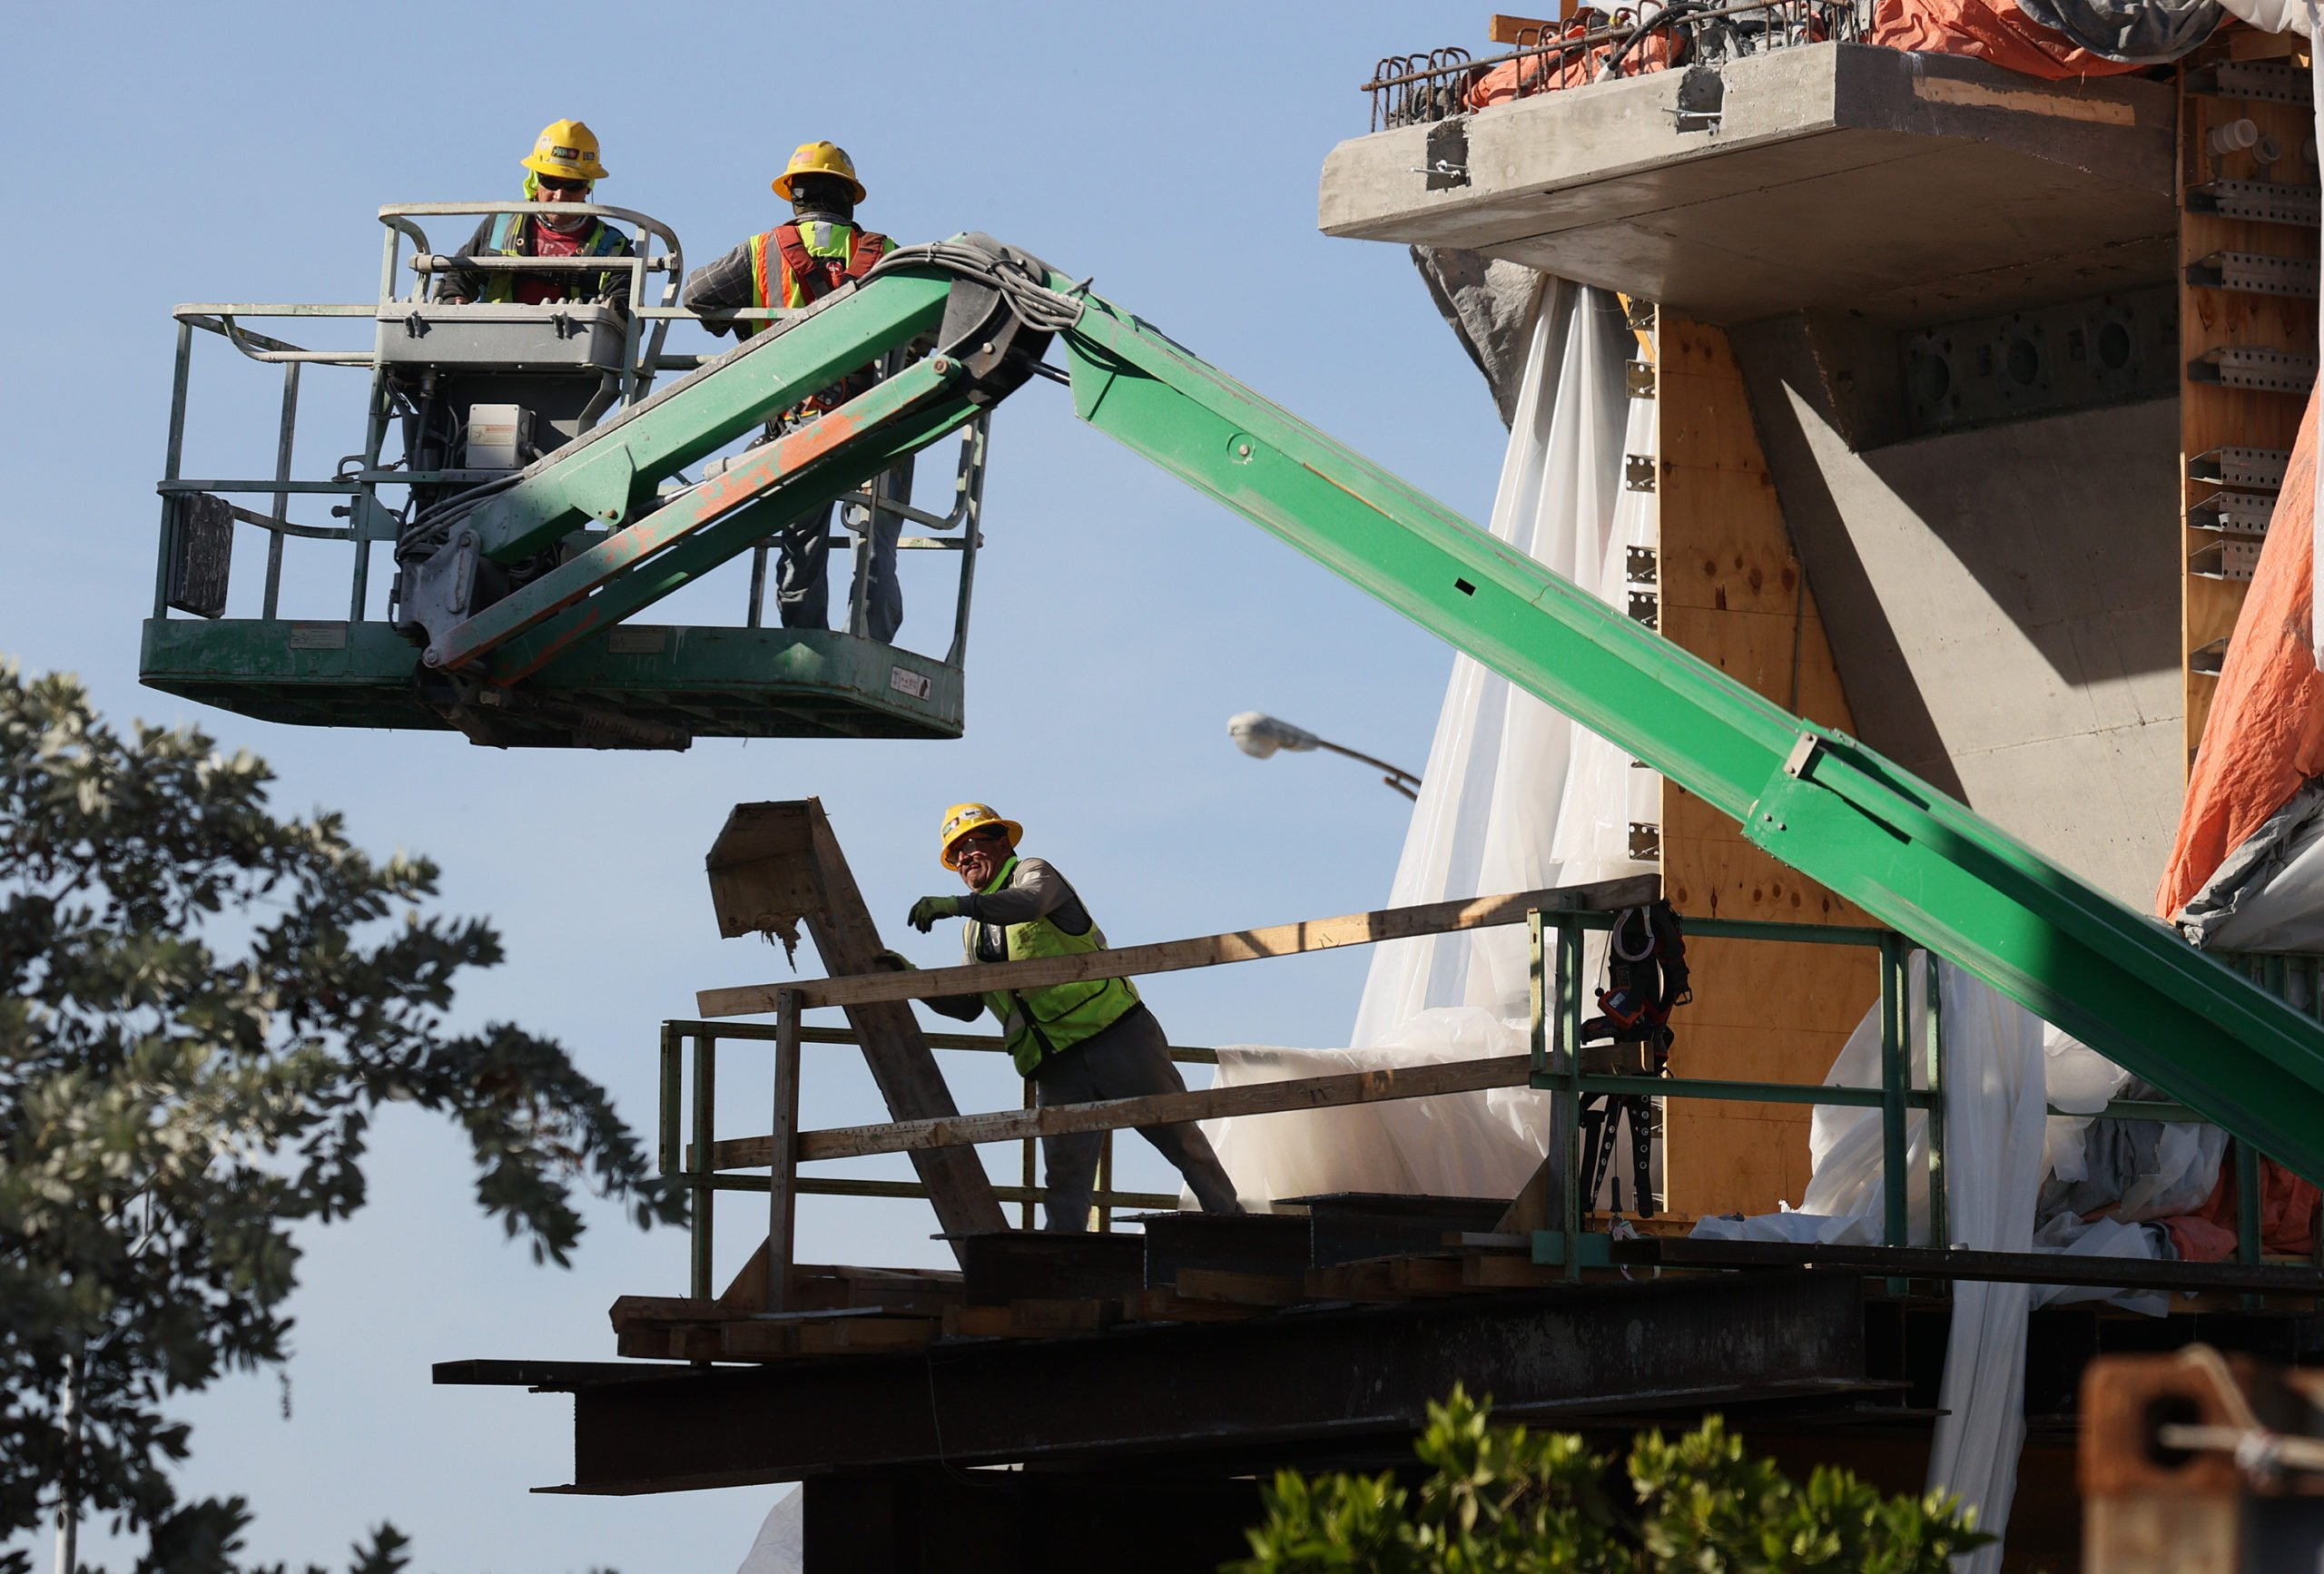 Construction workers on a job site in Florida. (Joe Raedle/Getty Images)